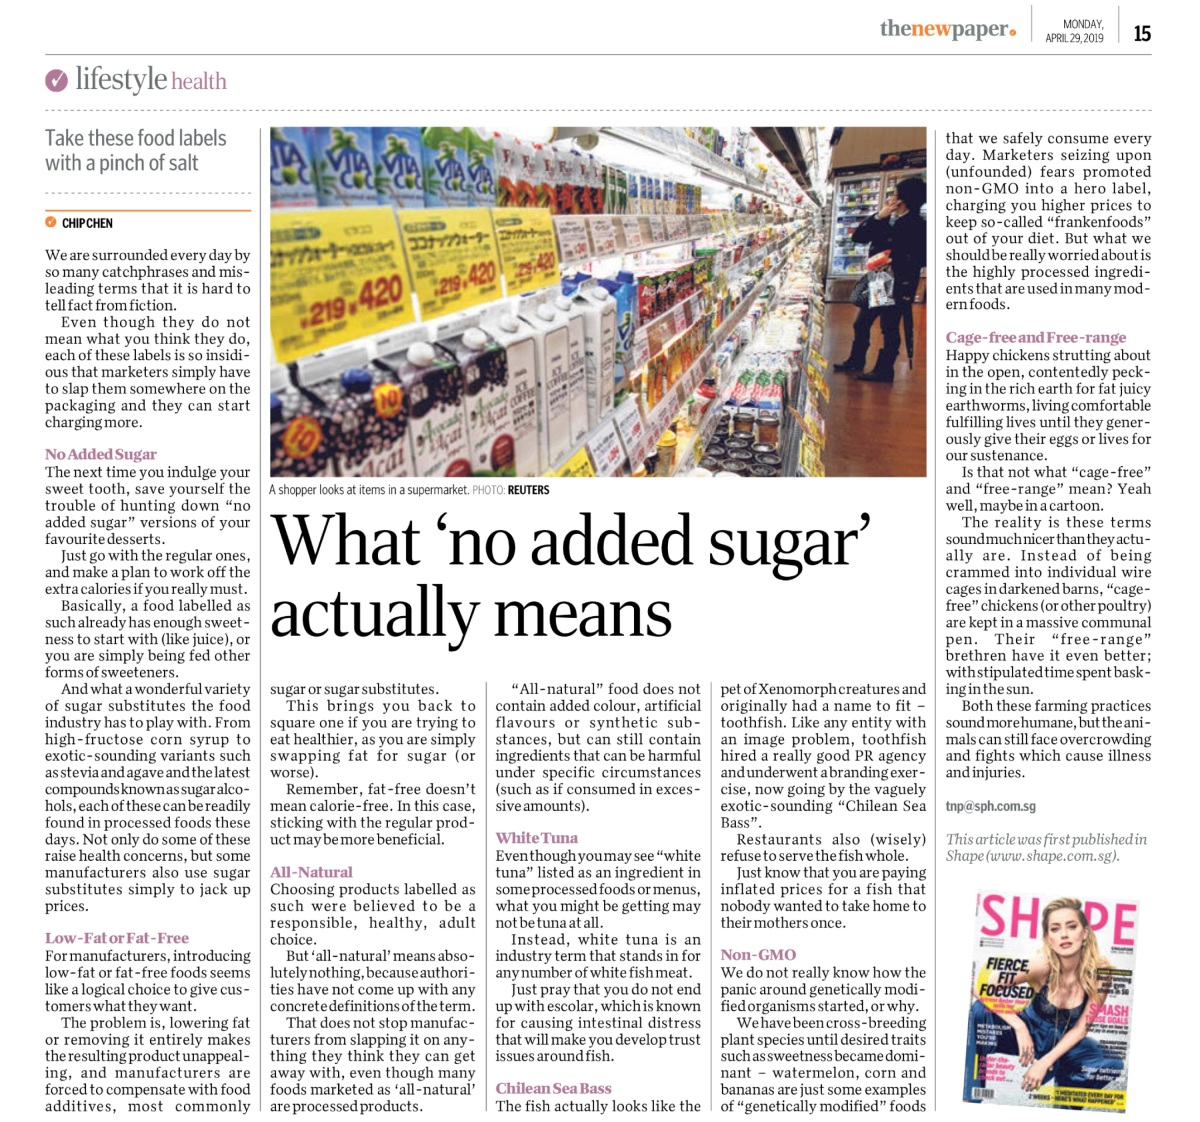 """No added sugar"" means sugar already present!"